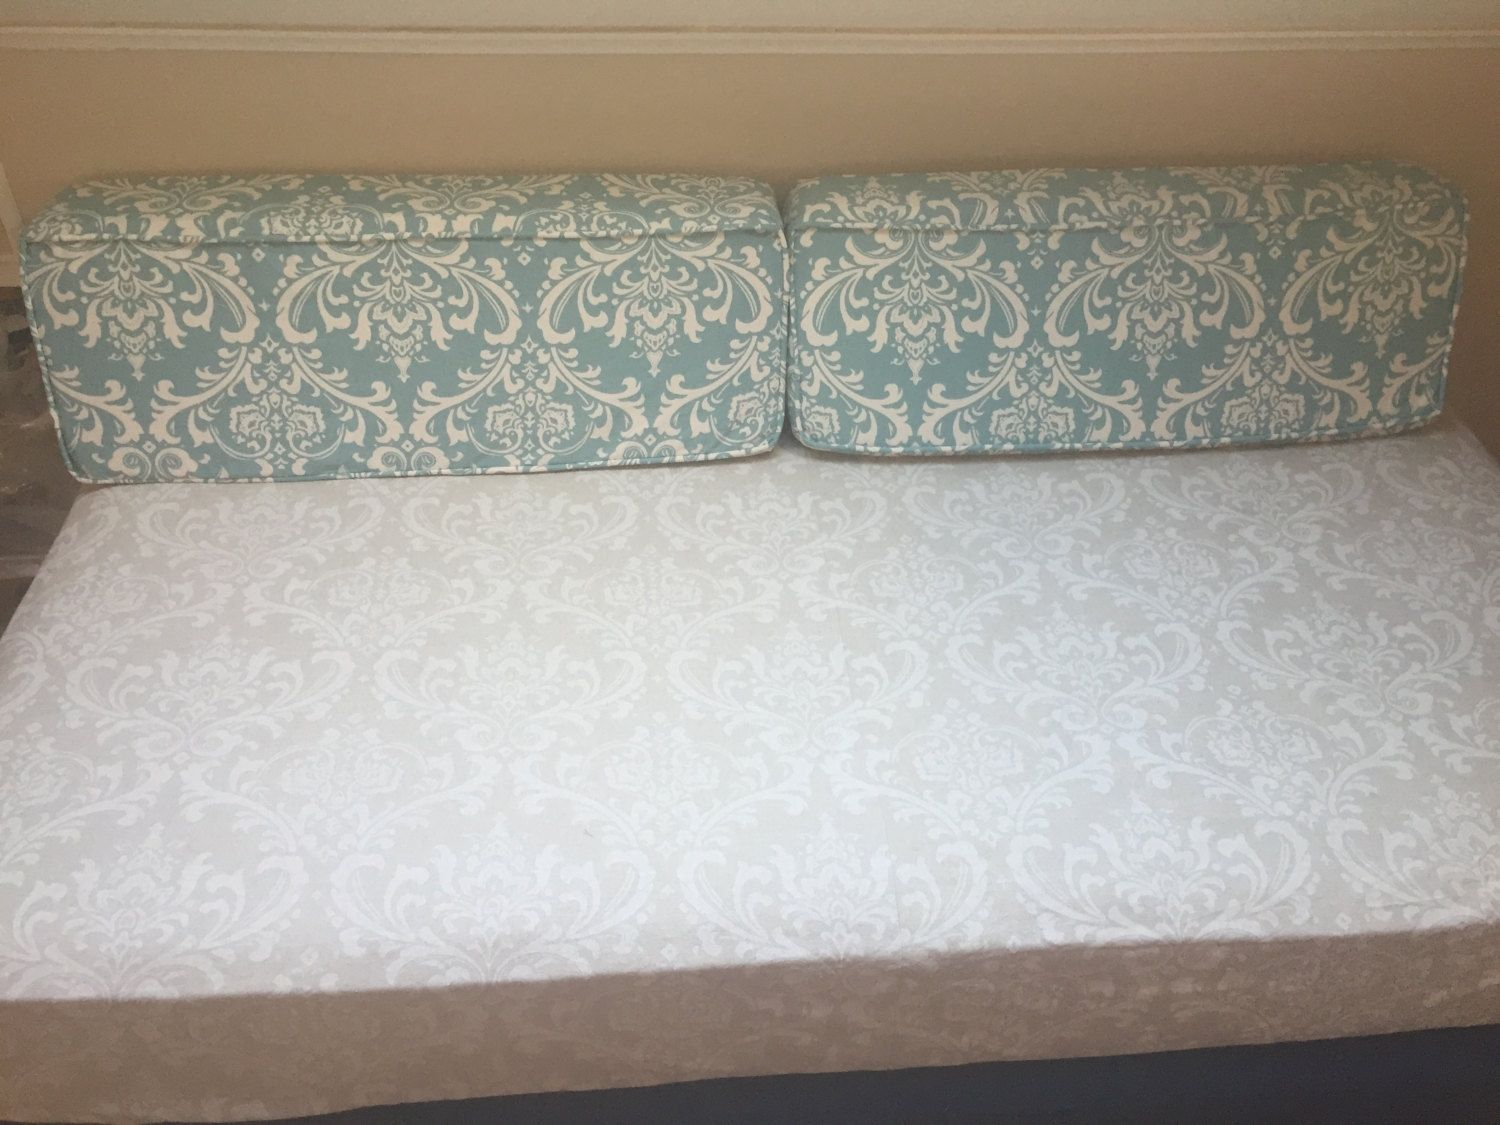 Daybed Wedge Covers 2 Custom 4 D X 8 D X 12 H X 36 W Any Premier